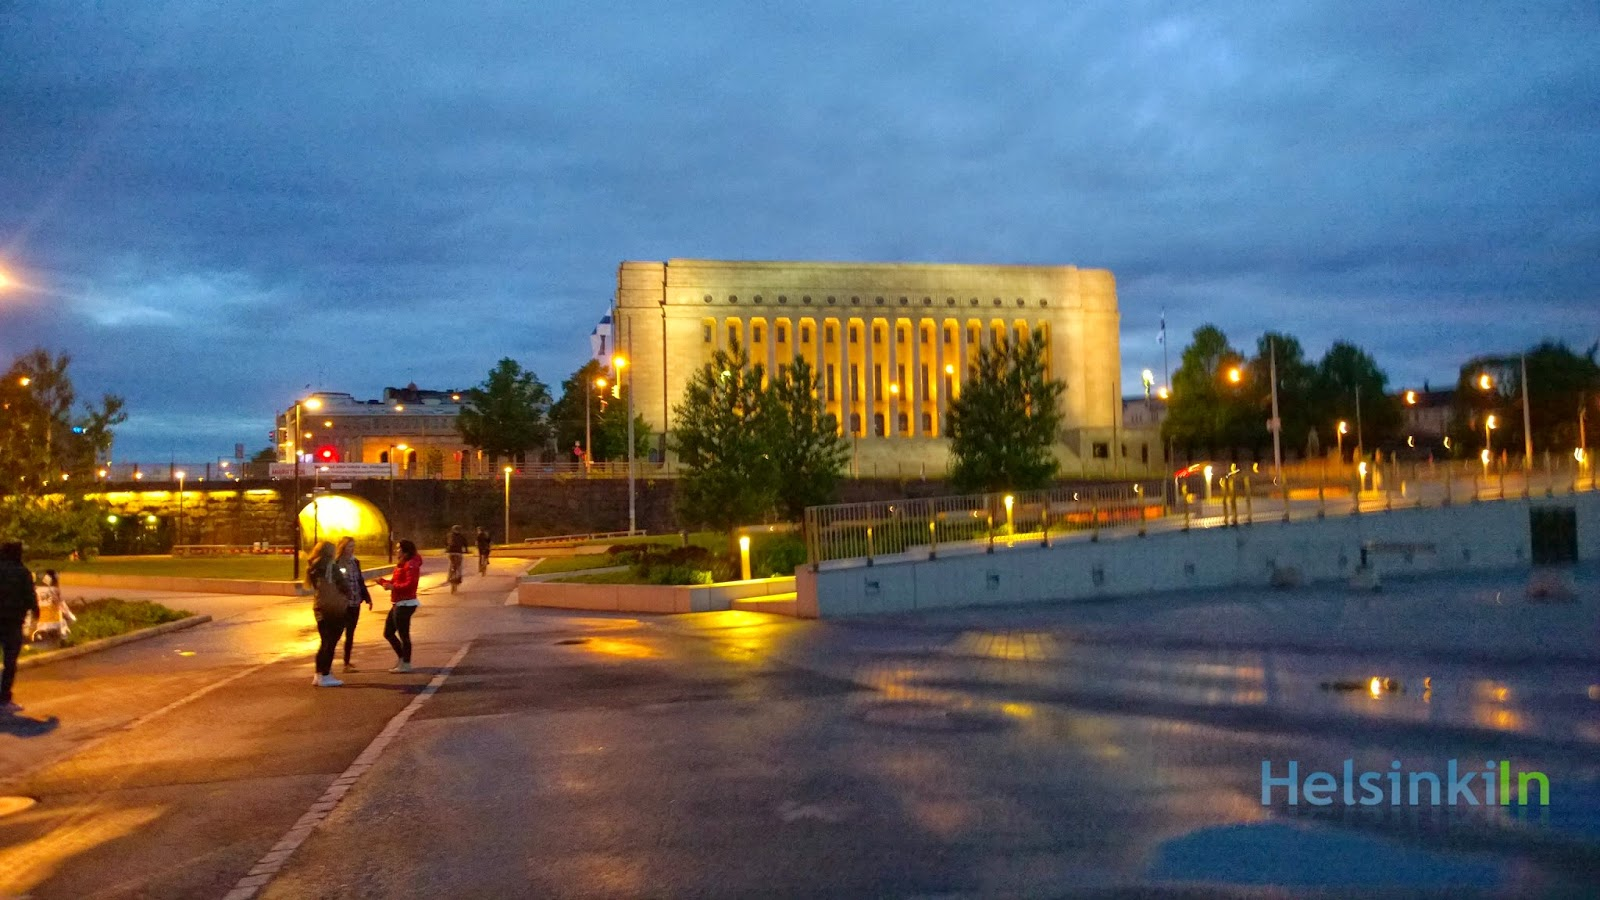 Finnish Parliament in a June night